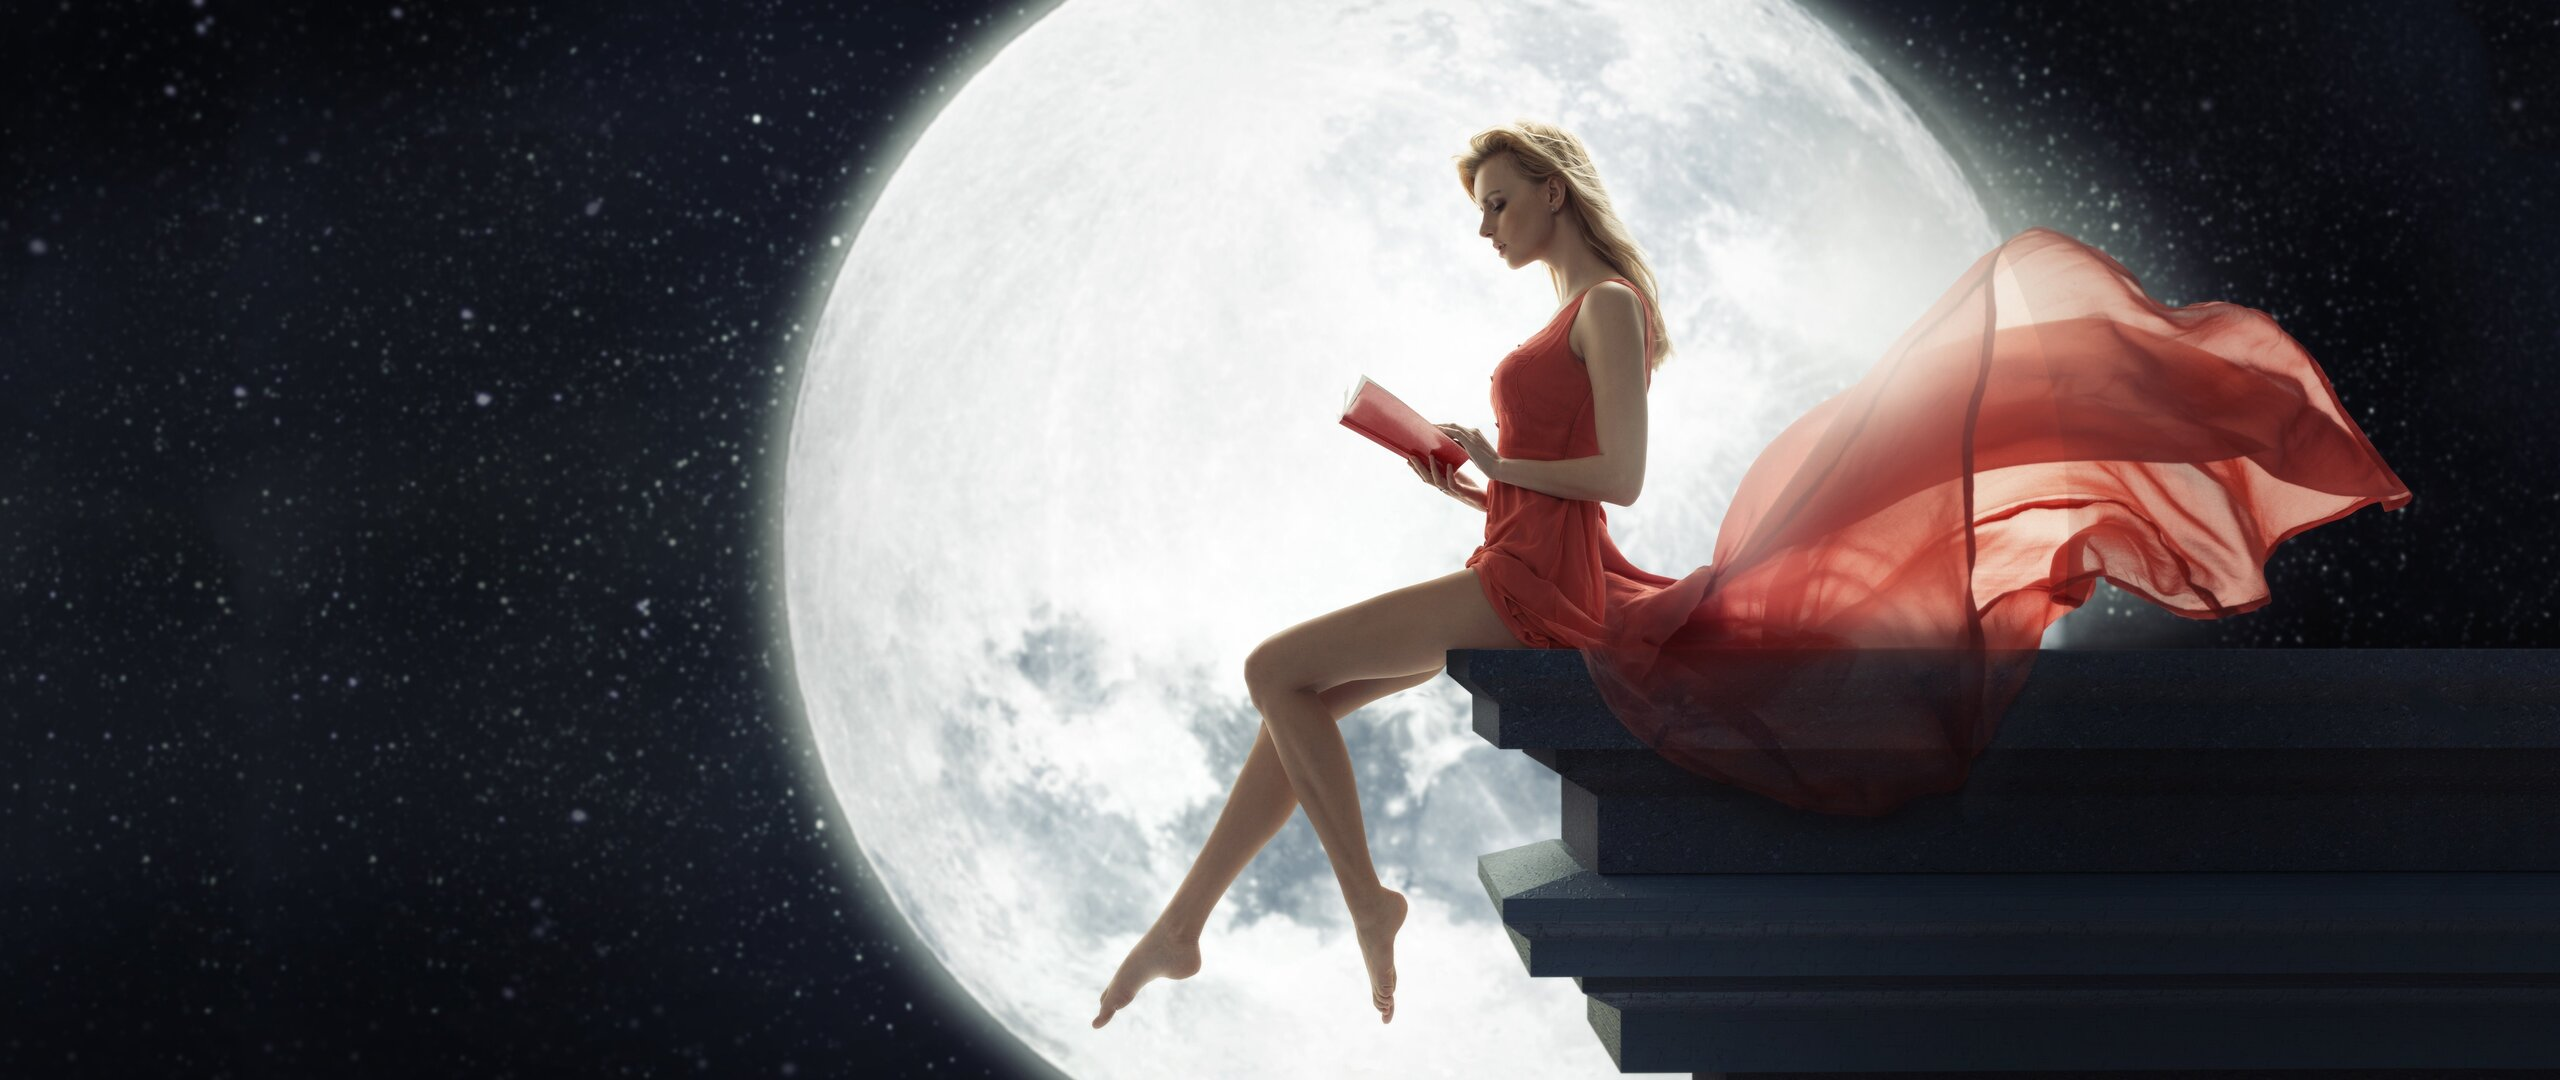 2560x1080 Fantasy Girl Sitting On Roof Reading Book Moon